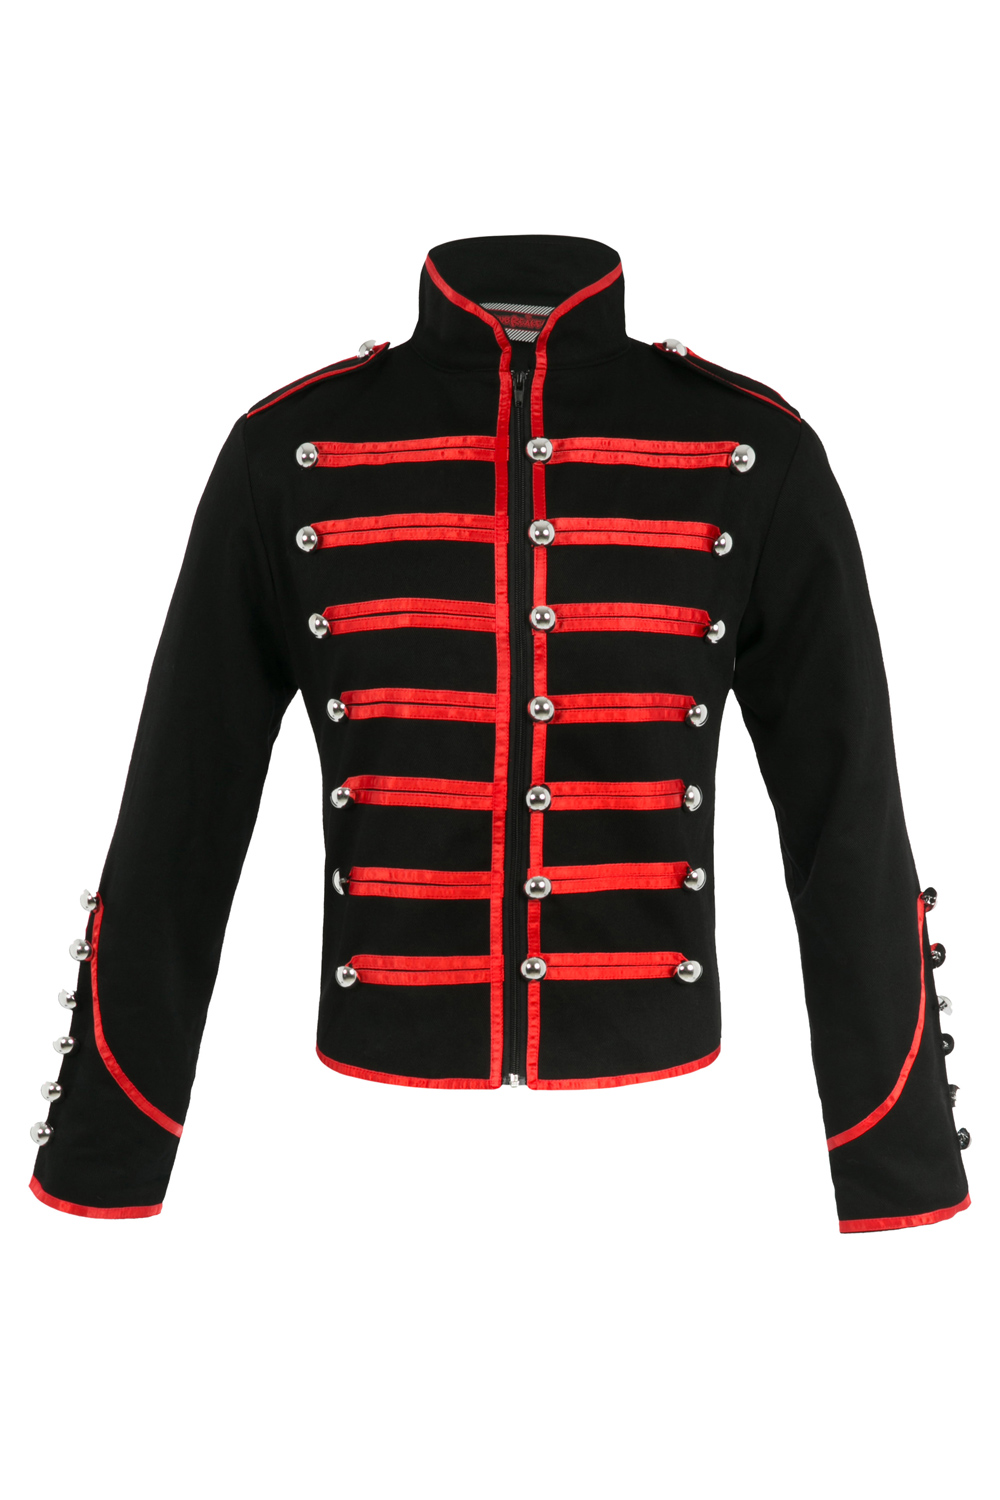 Admiral Red Jacket